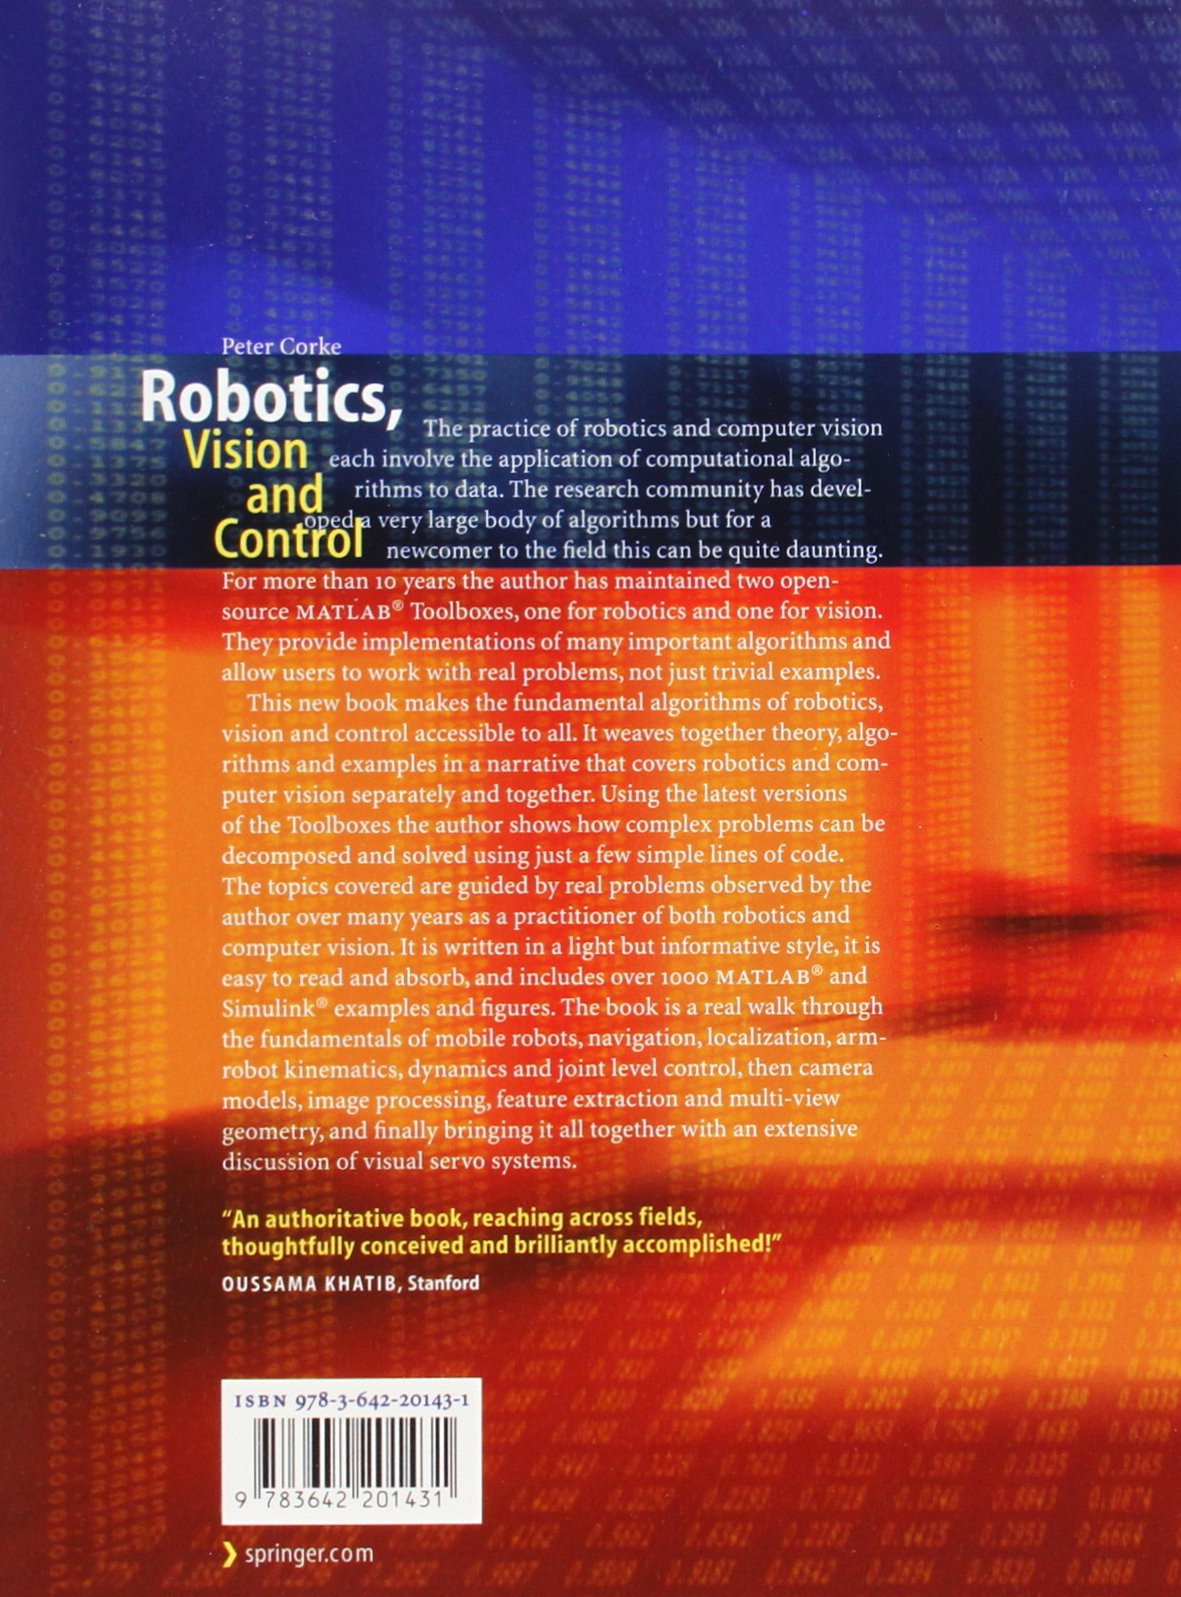 Robotics, Vision and Control: Fundamental Algorithms in MATLAB